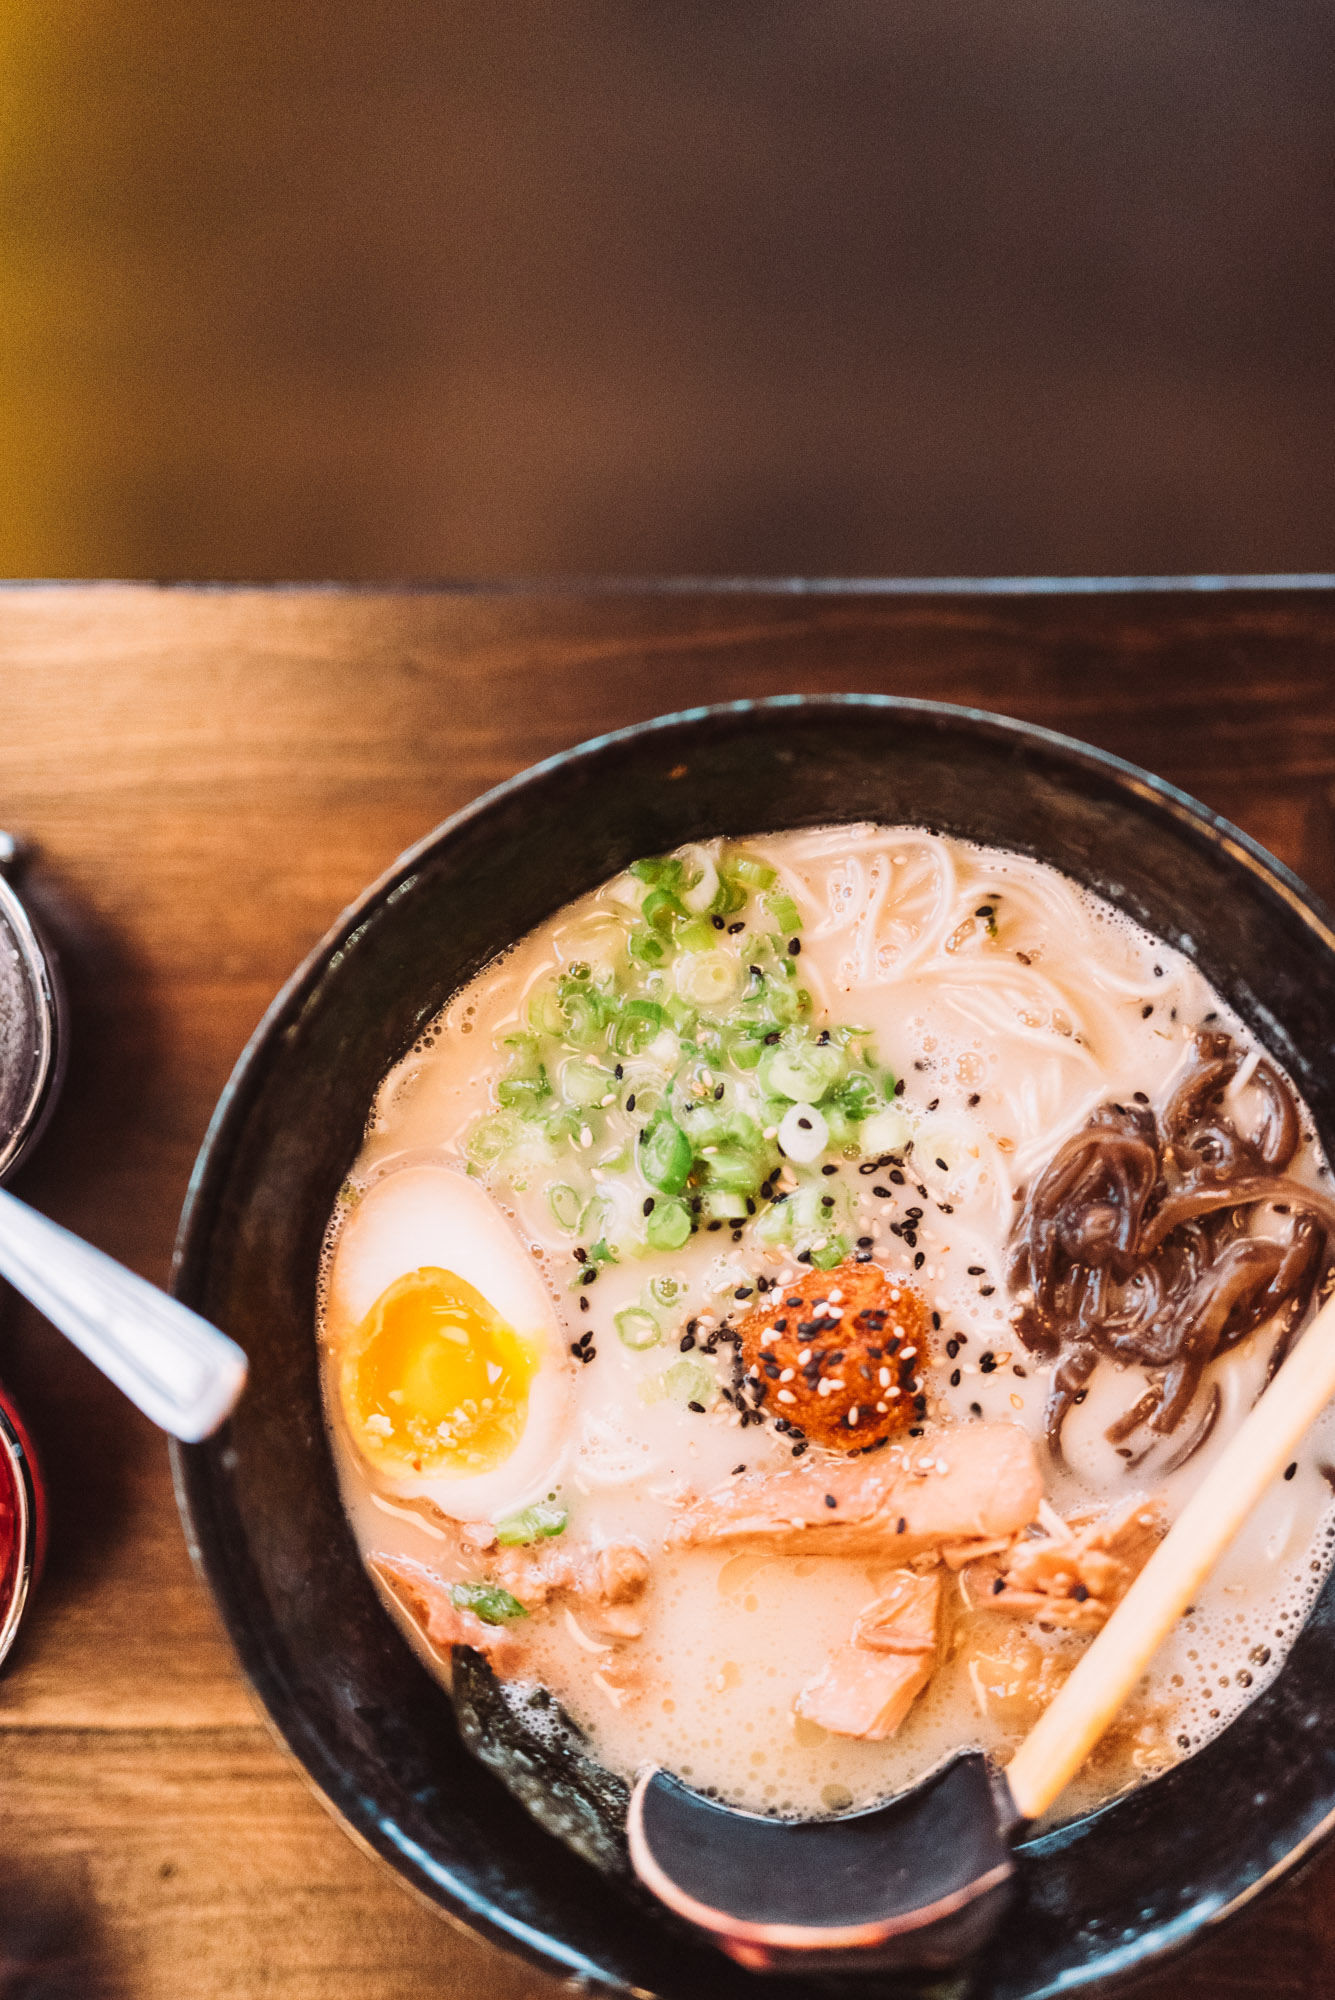 Best Ramen in Montreal - Jeff On The Road - Montreal - Food - Japanese - Yokato Yokabai